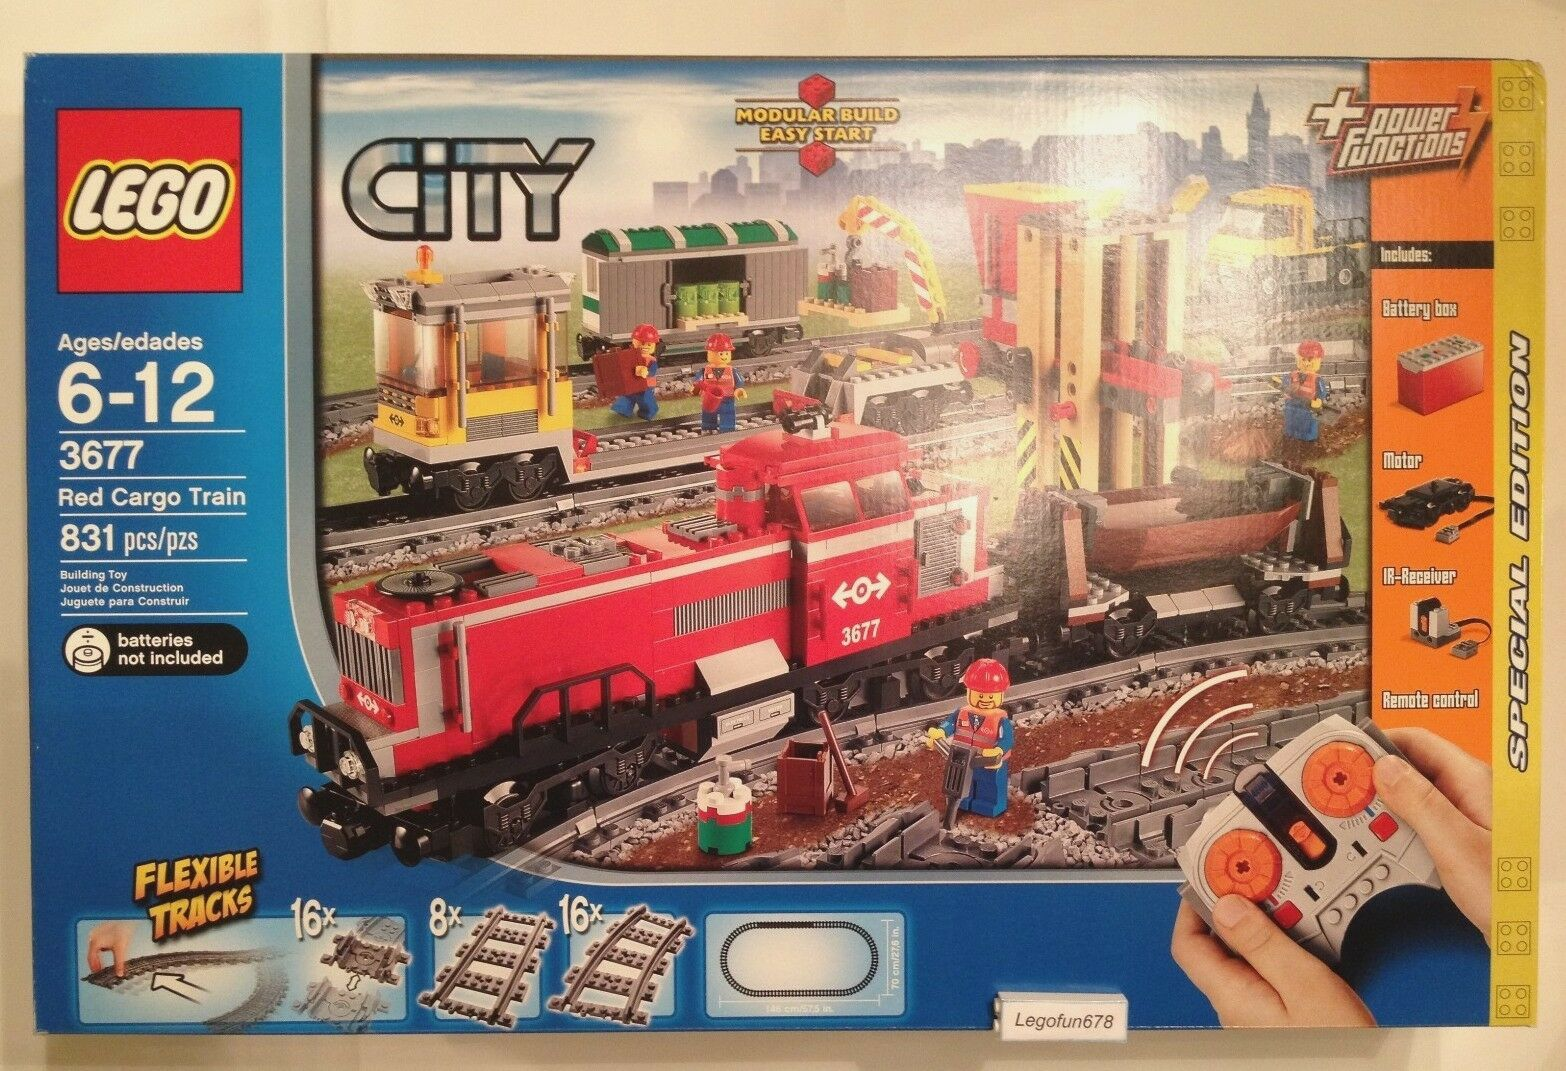 Lego City Trains 3677 Red Cargo Train Train Train Special Edition New In Factory Sealed Box bf0fd3